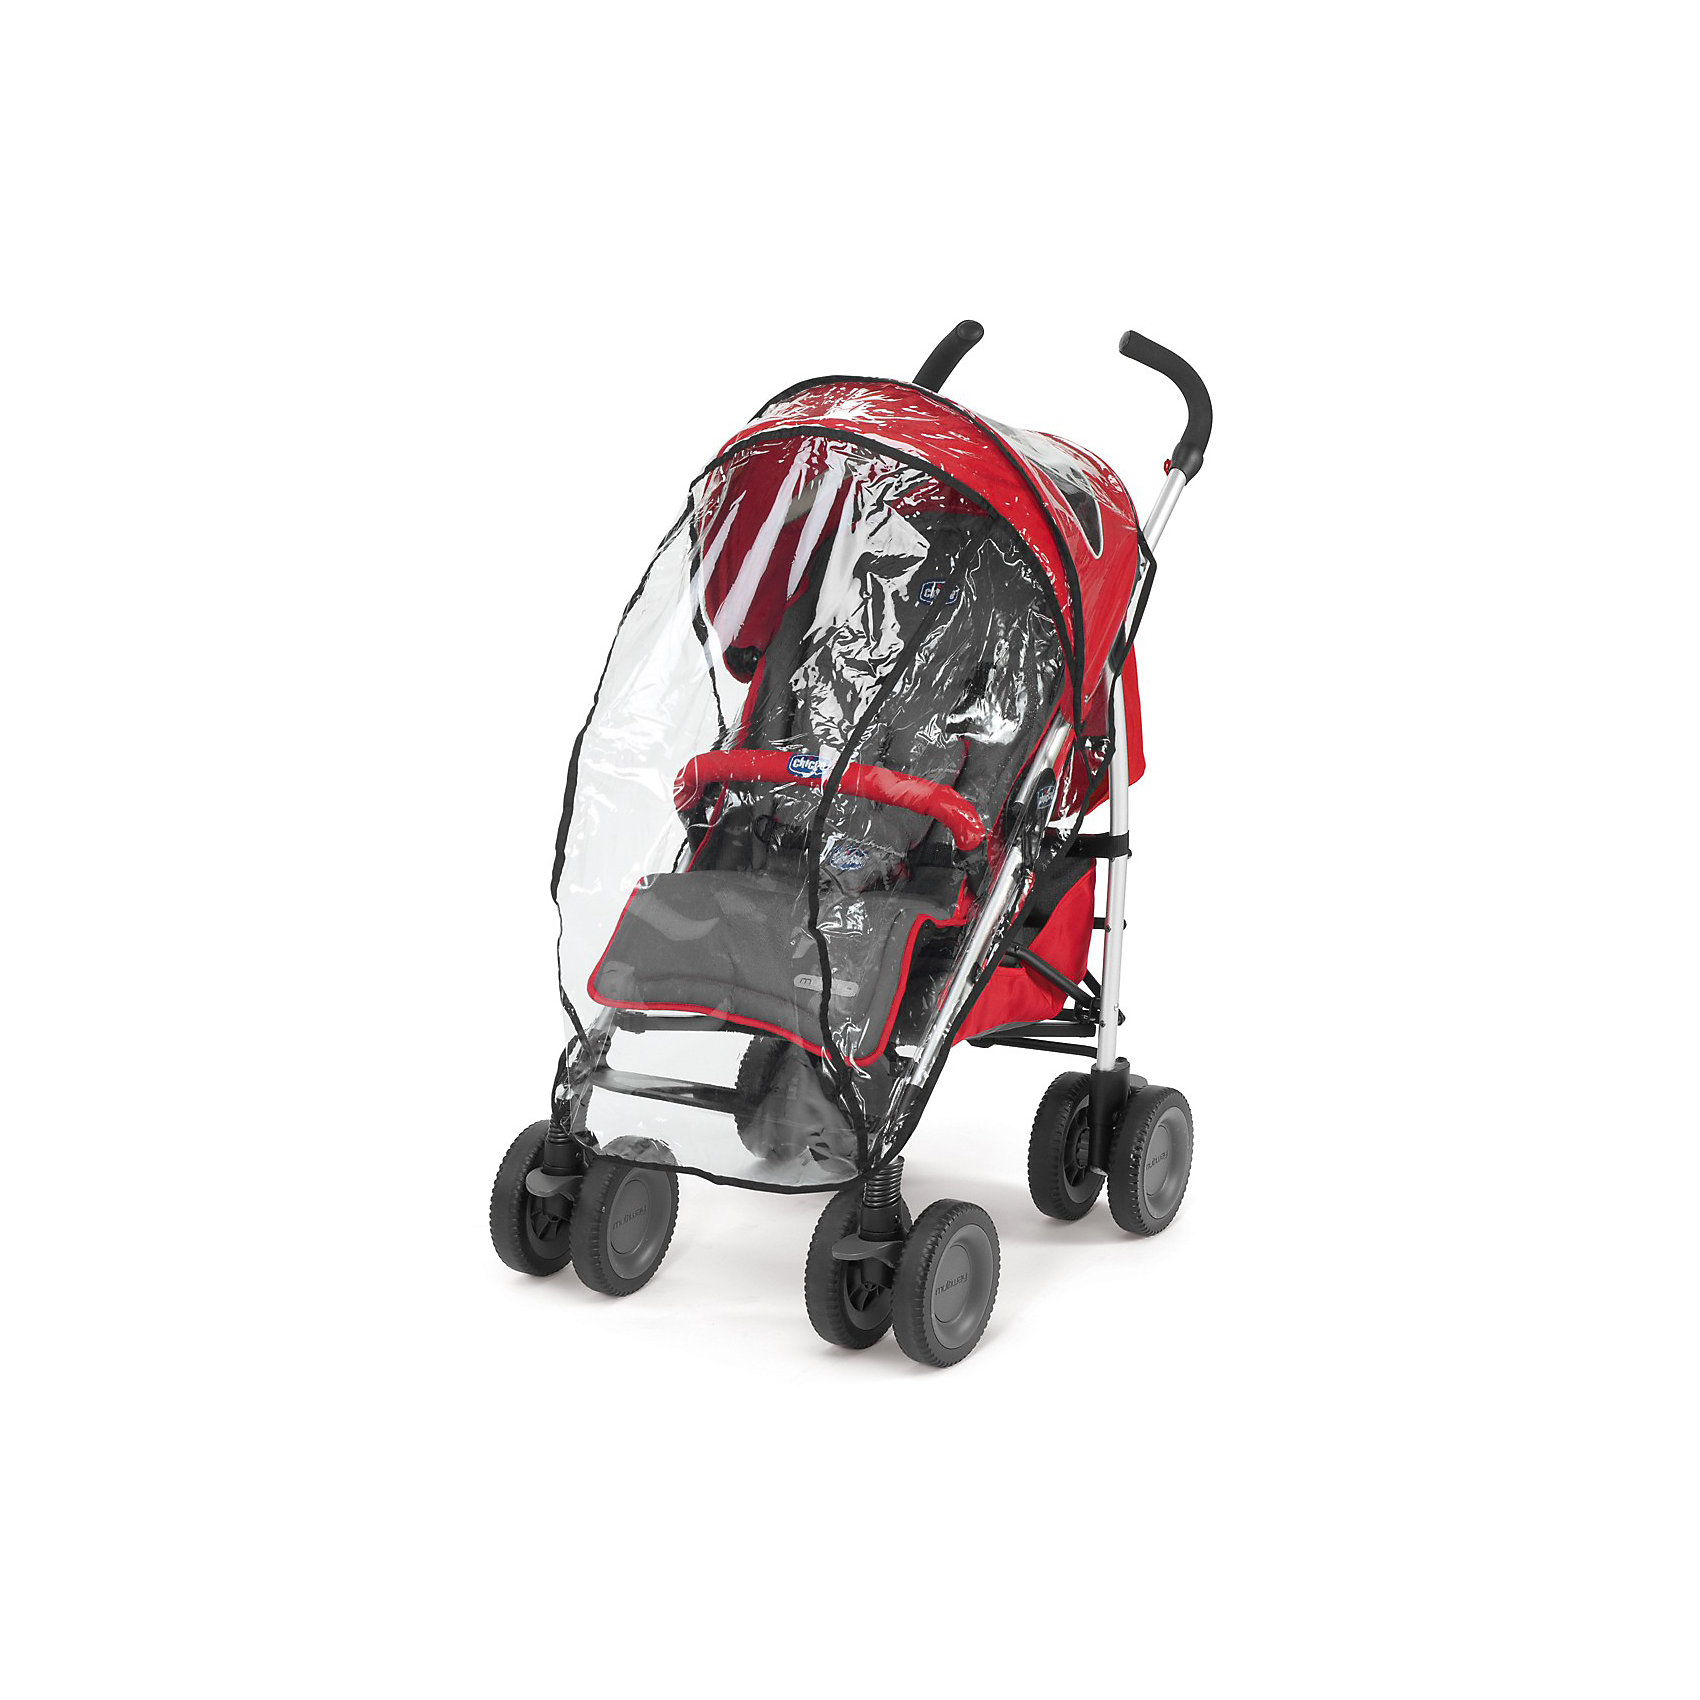 �������-������ Multiway Evo, Chicco, ������� (CHICCO)